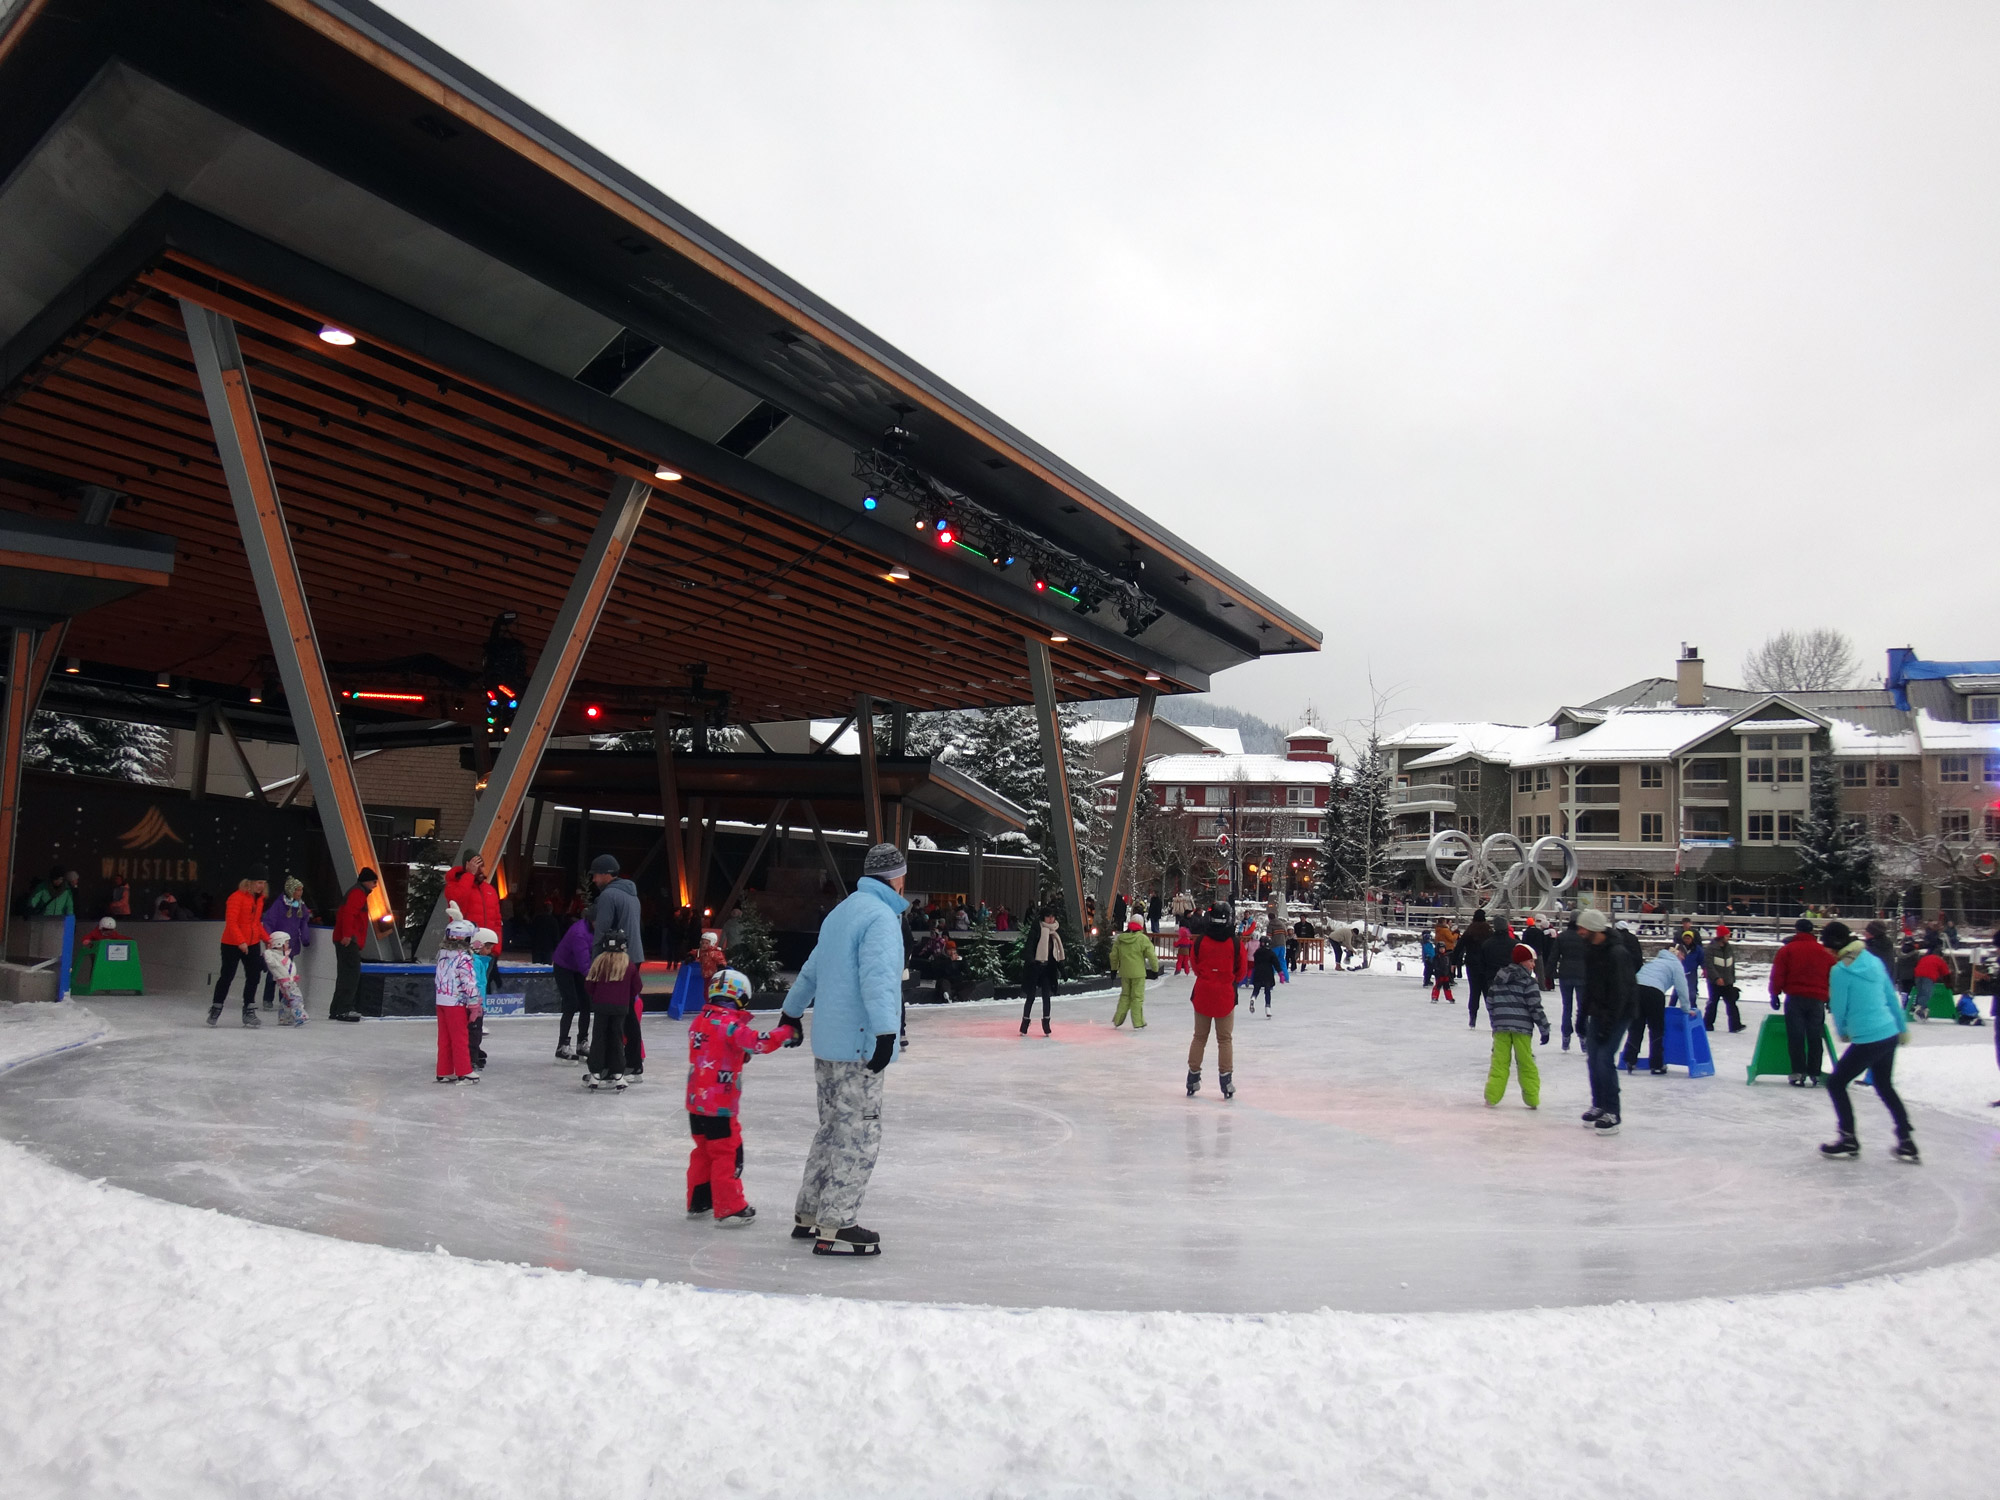 whistler-olympic-plaza-skating-rink.jpg